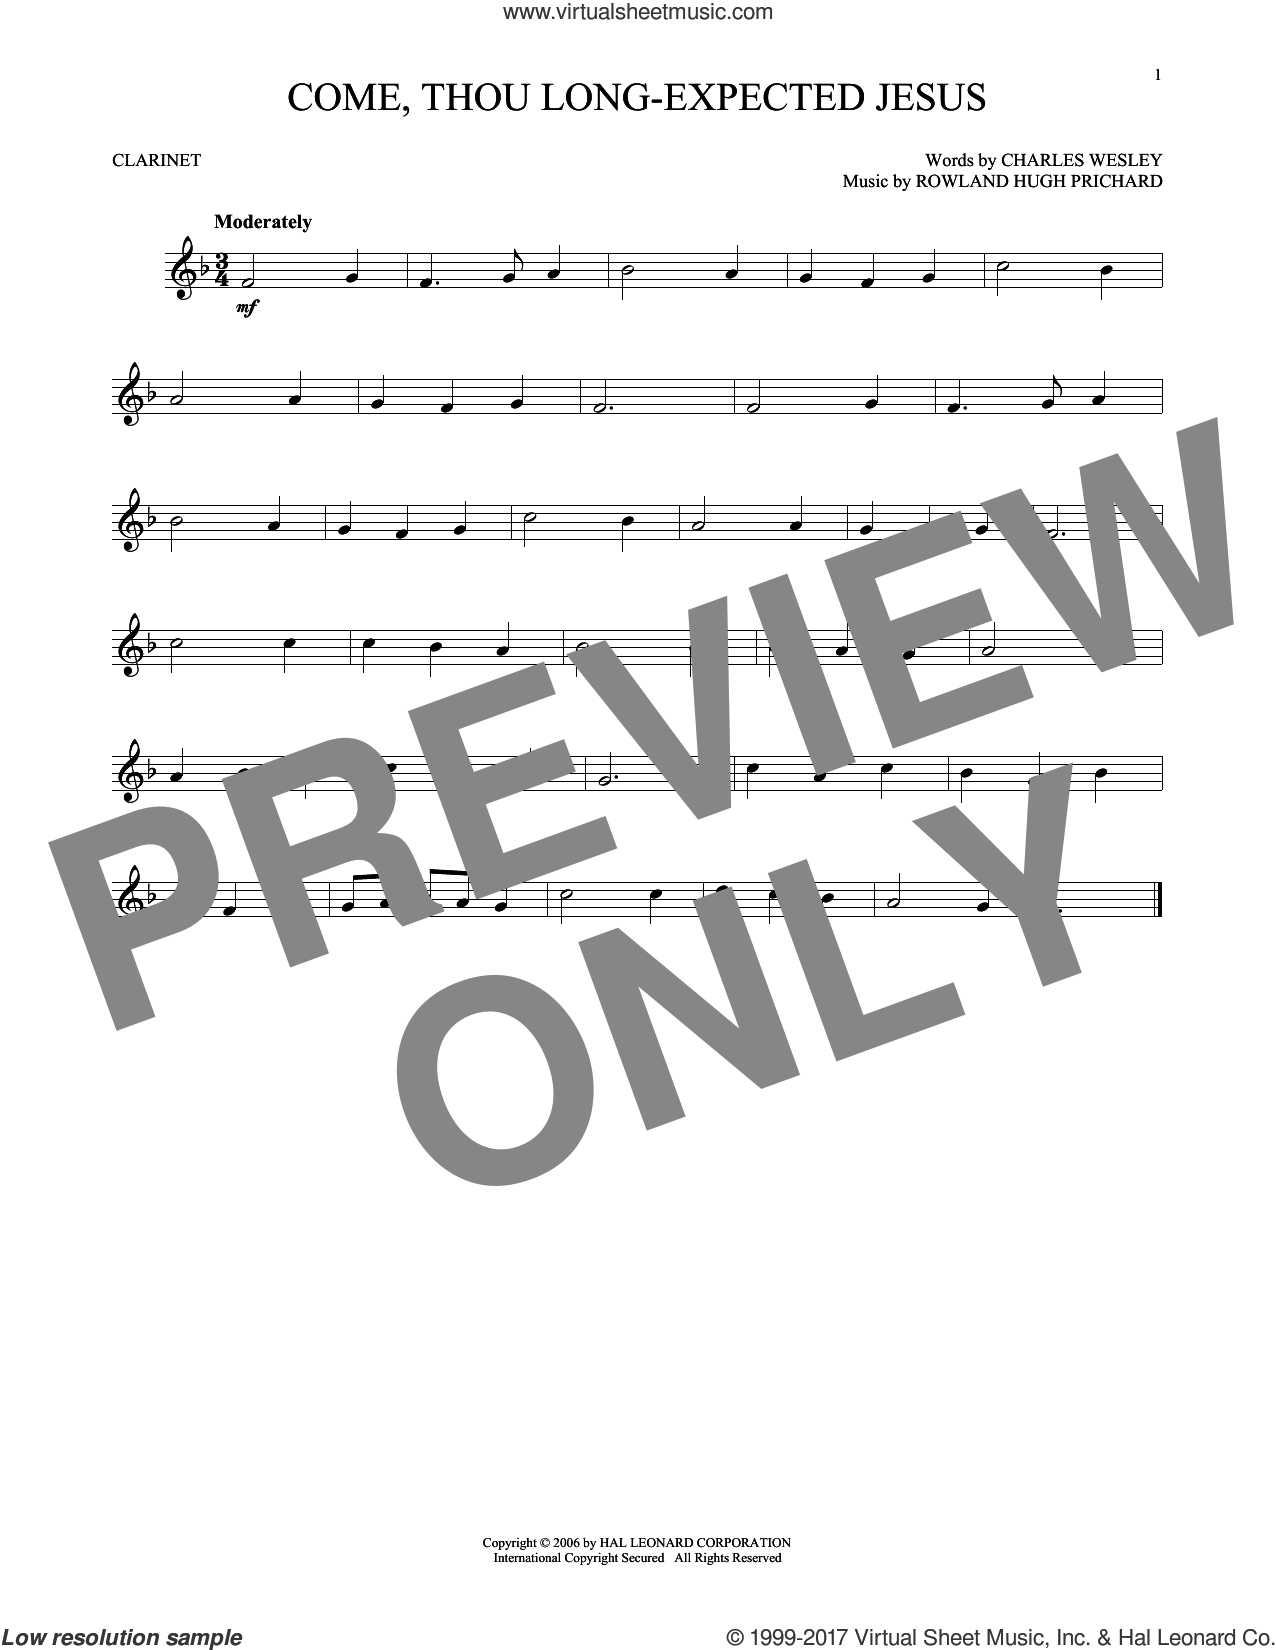 Come, Thou Long-Expected Jesus sheet music for clarinet solo by Charles Wesley and Rowland Prichard, intermediate. Score Image Preview.